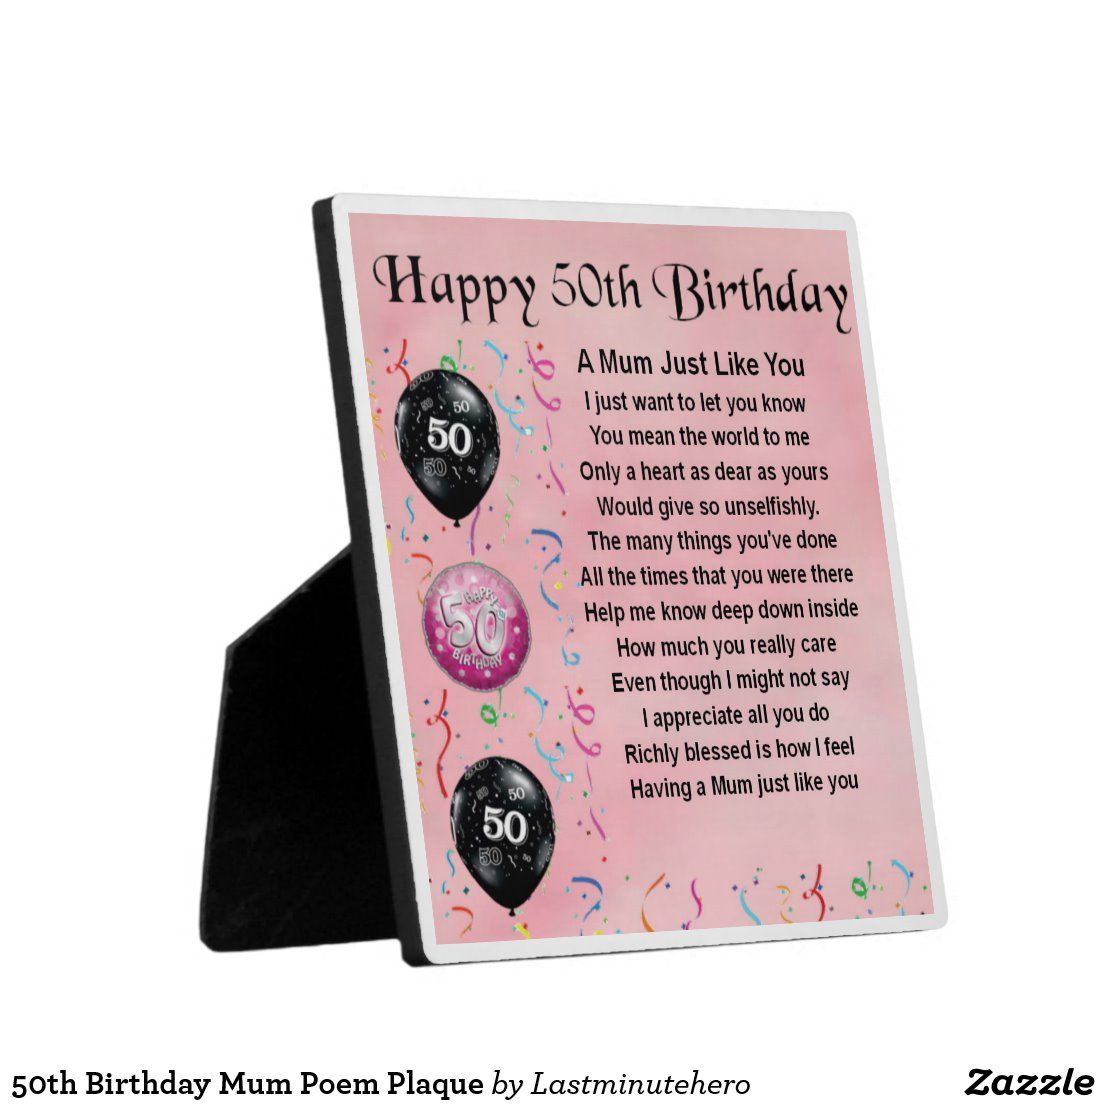 50th Birthday Mum Poem Plaque Zazzle.co.uk in 2020